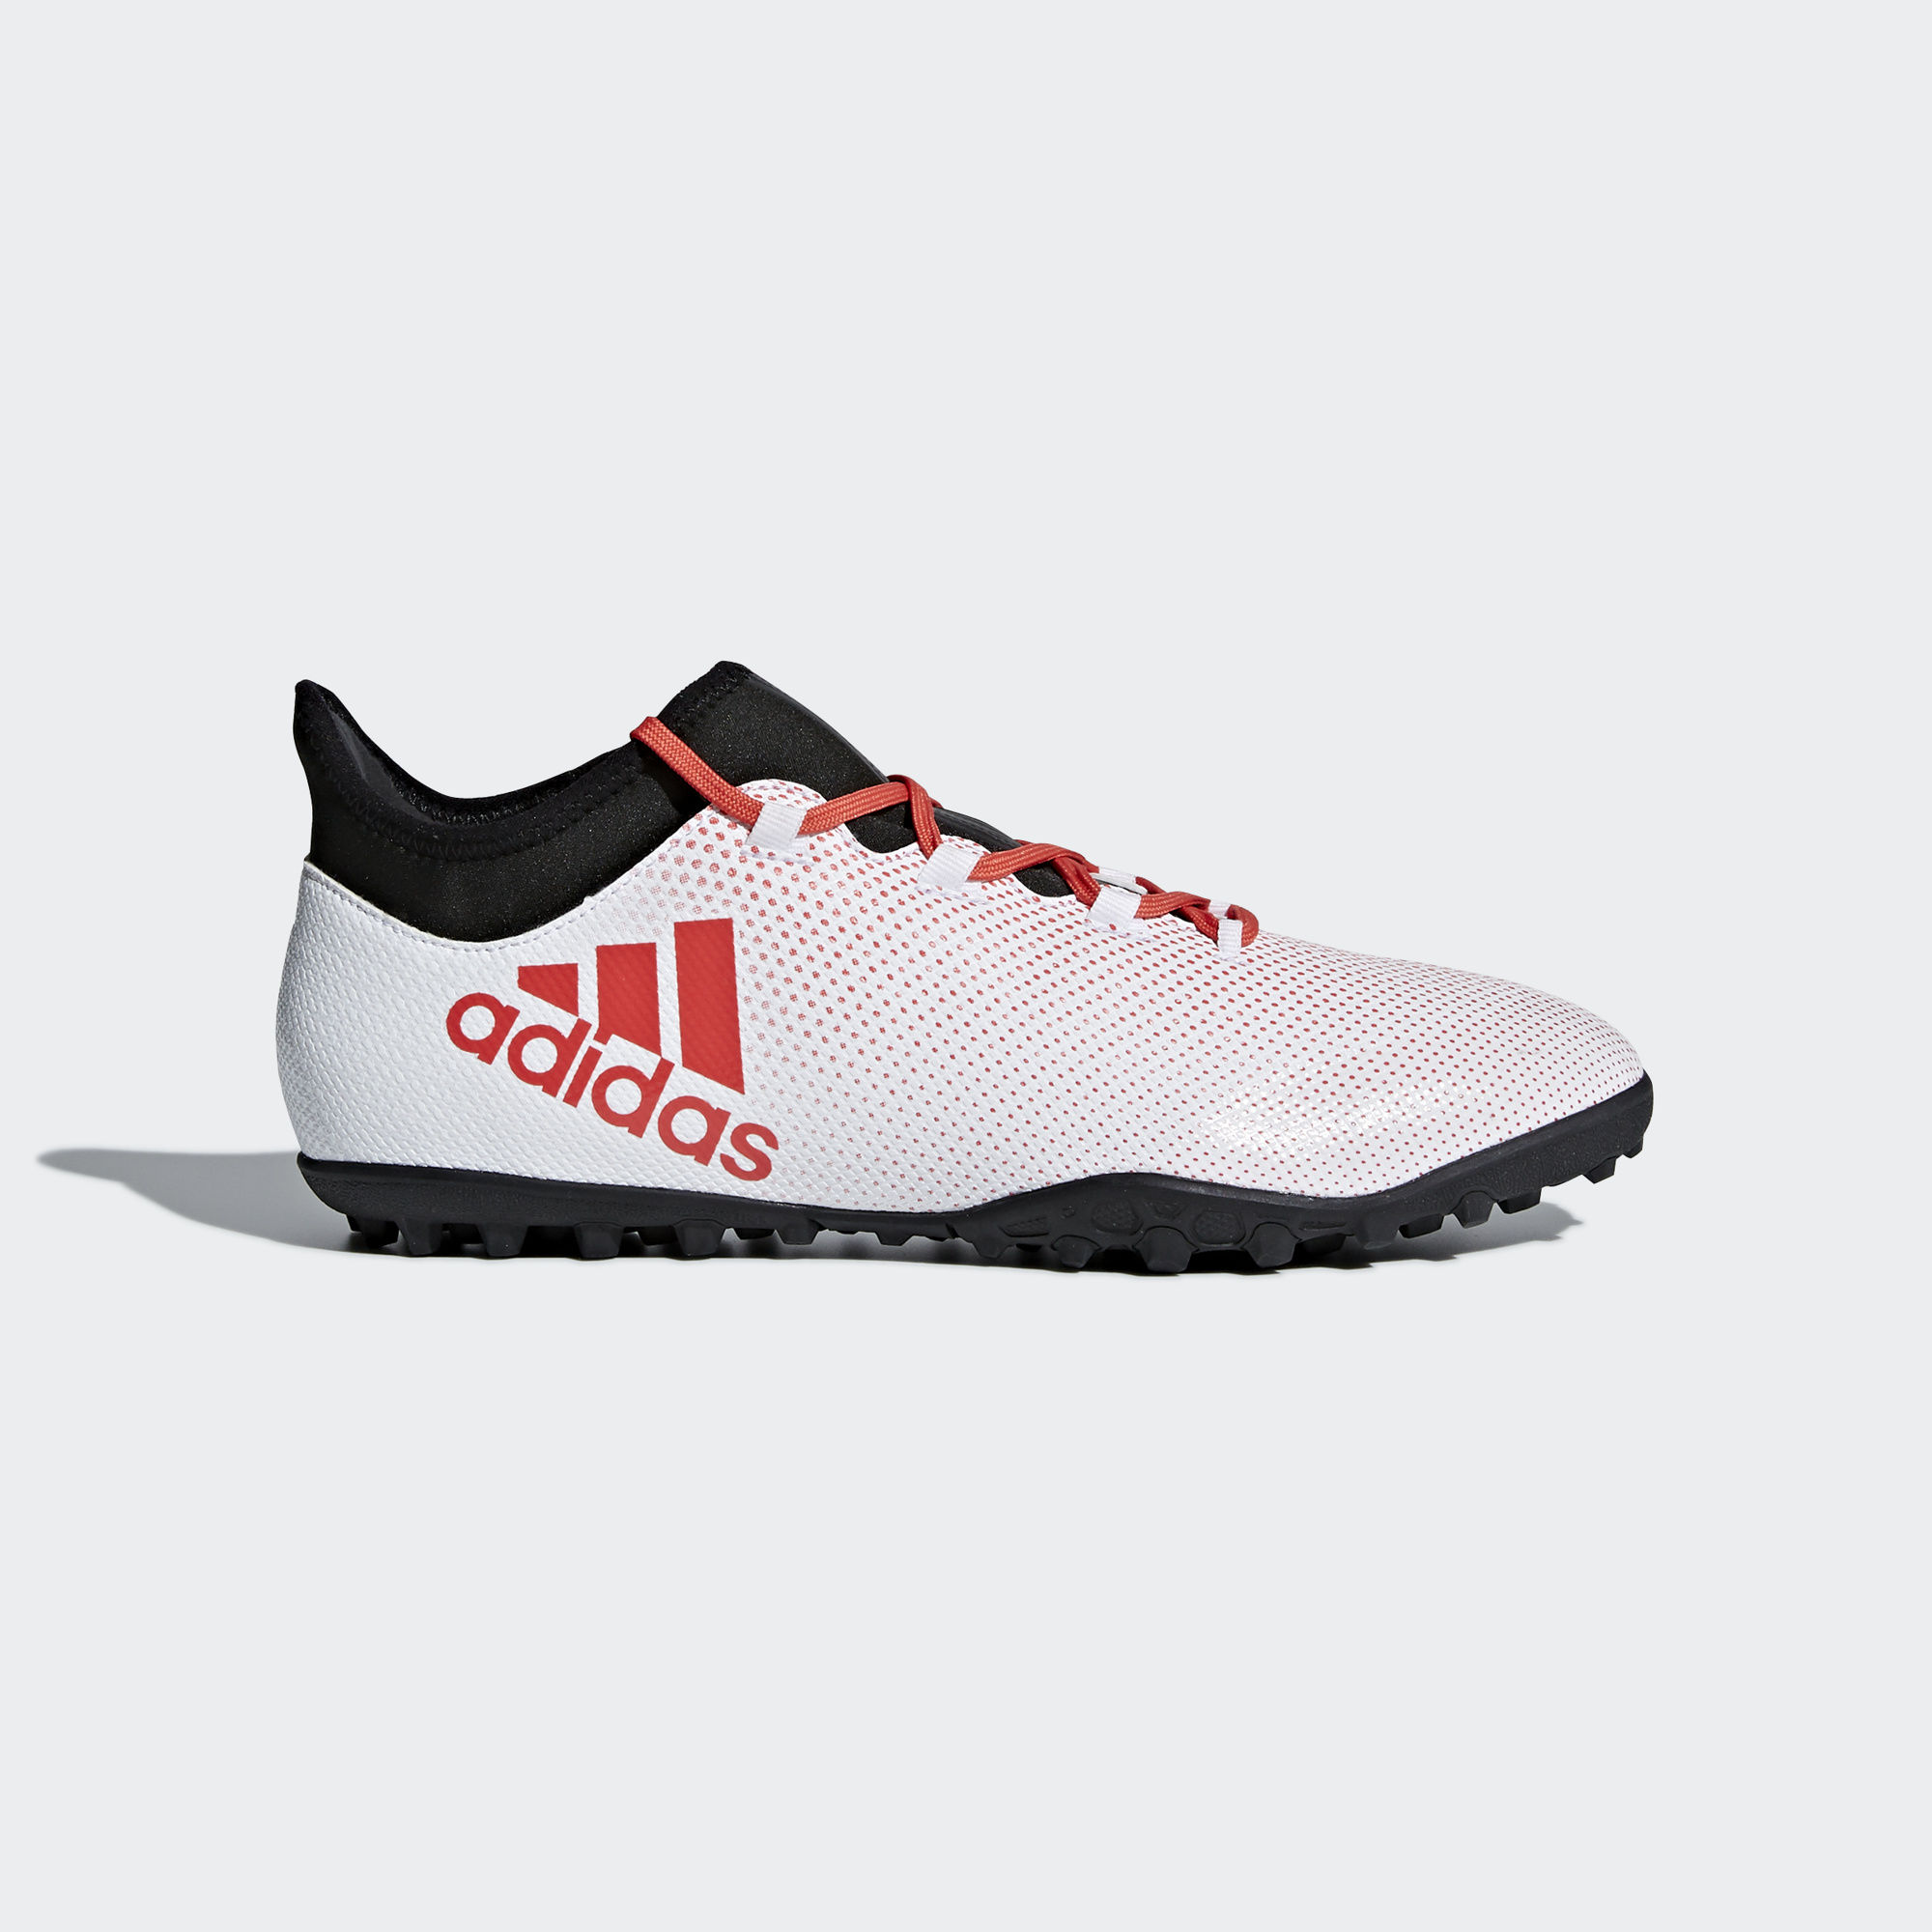 sale retailer 6700c f9b4d Adidas X Tango 17.3 TF Cold Blooded - Grey   Real Coral   Core Black